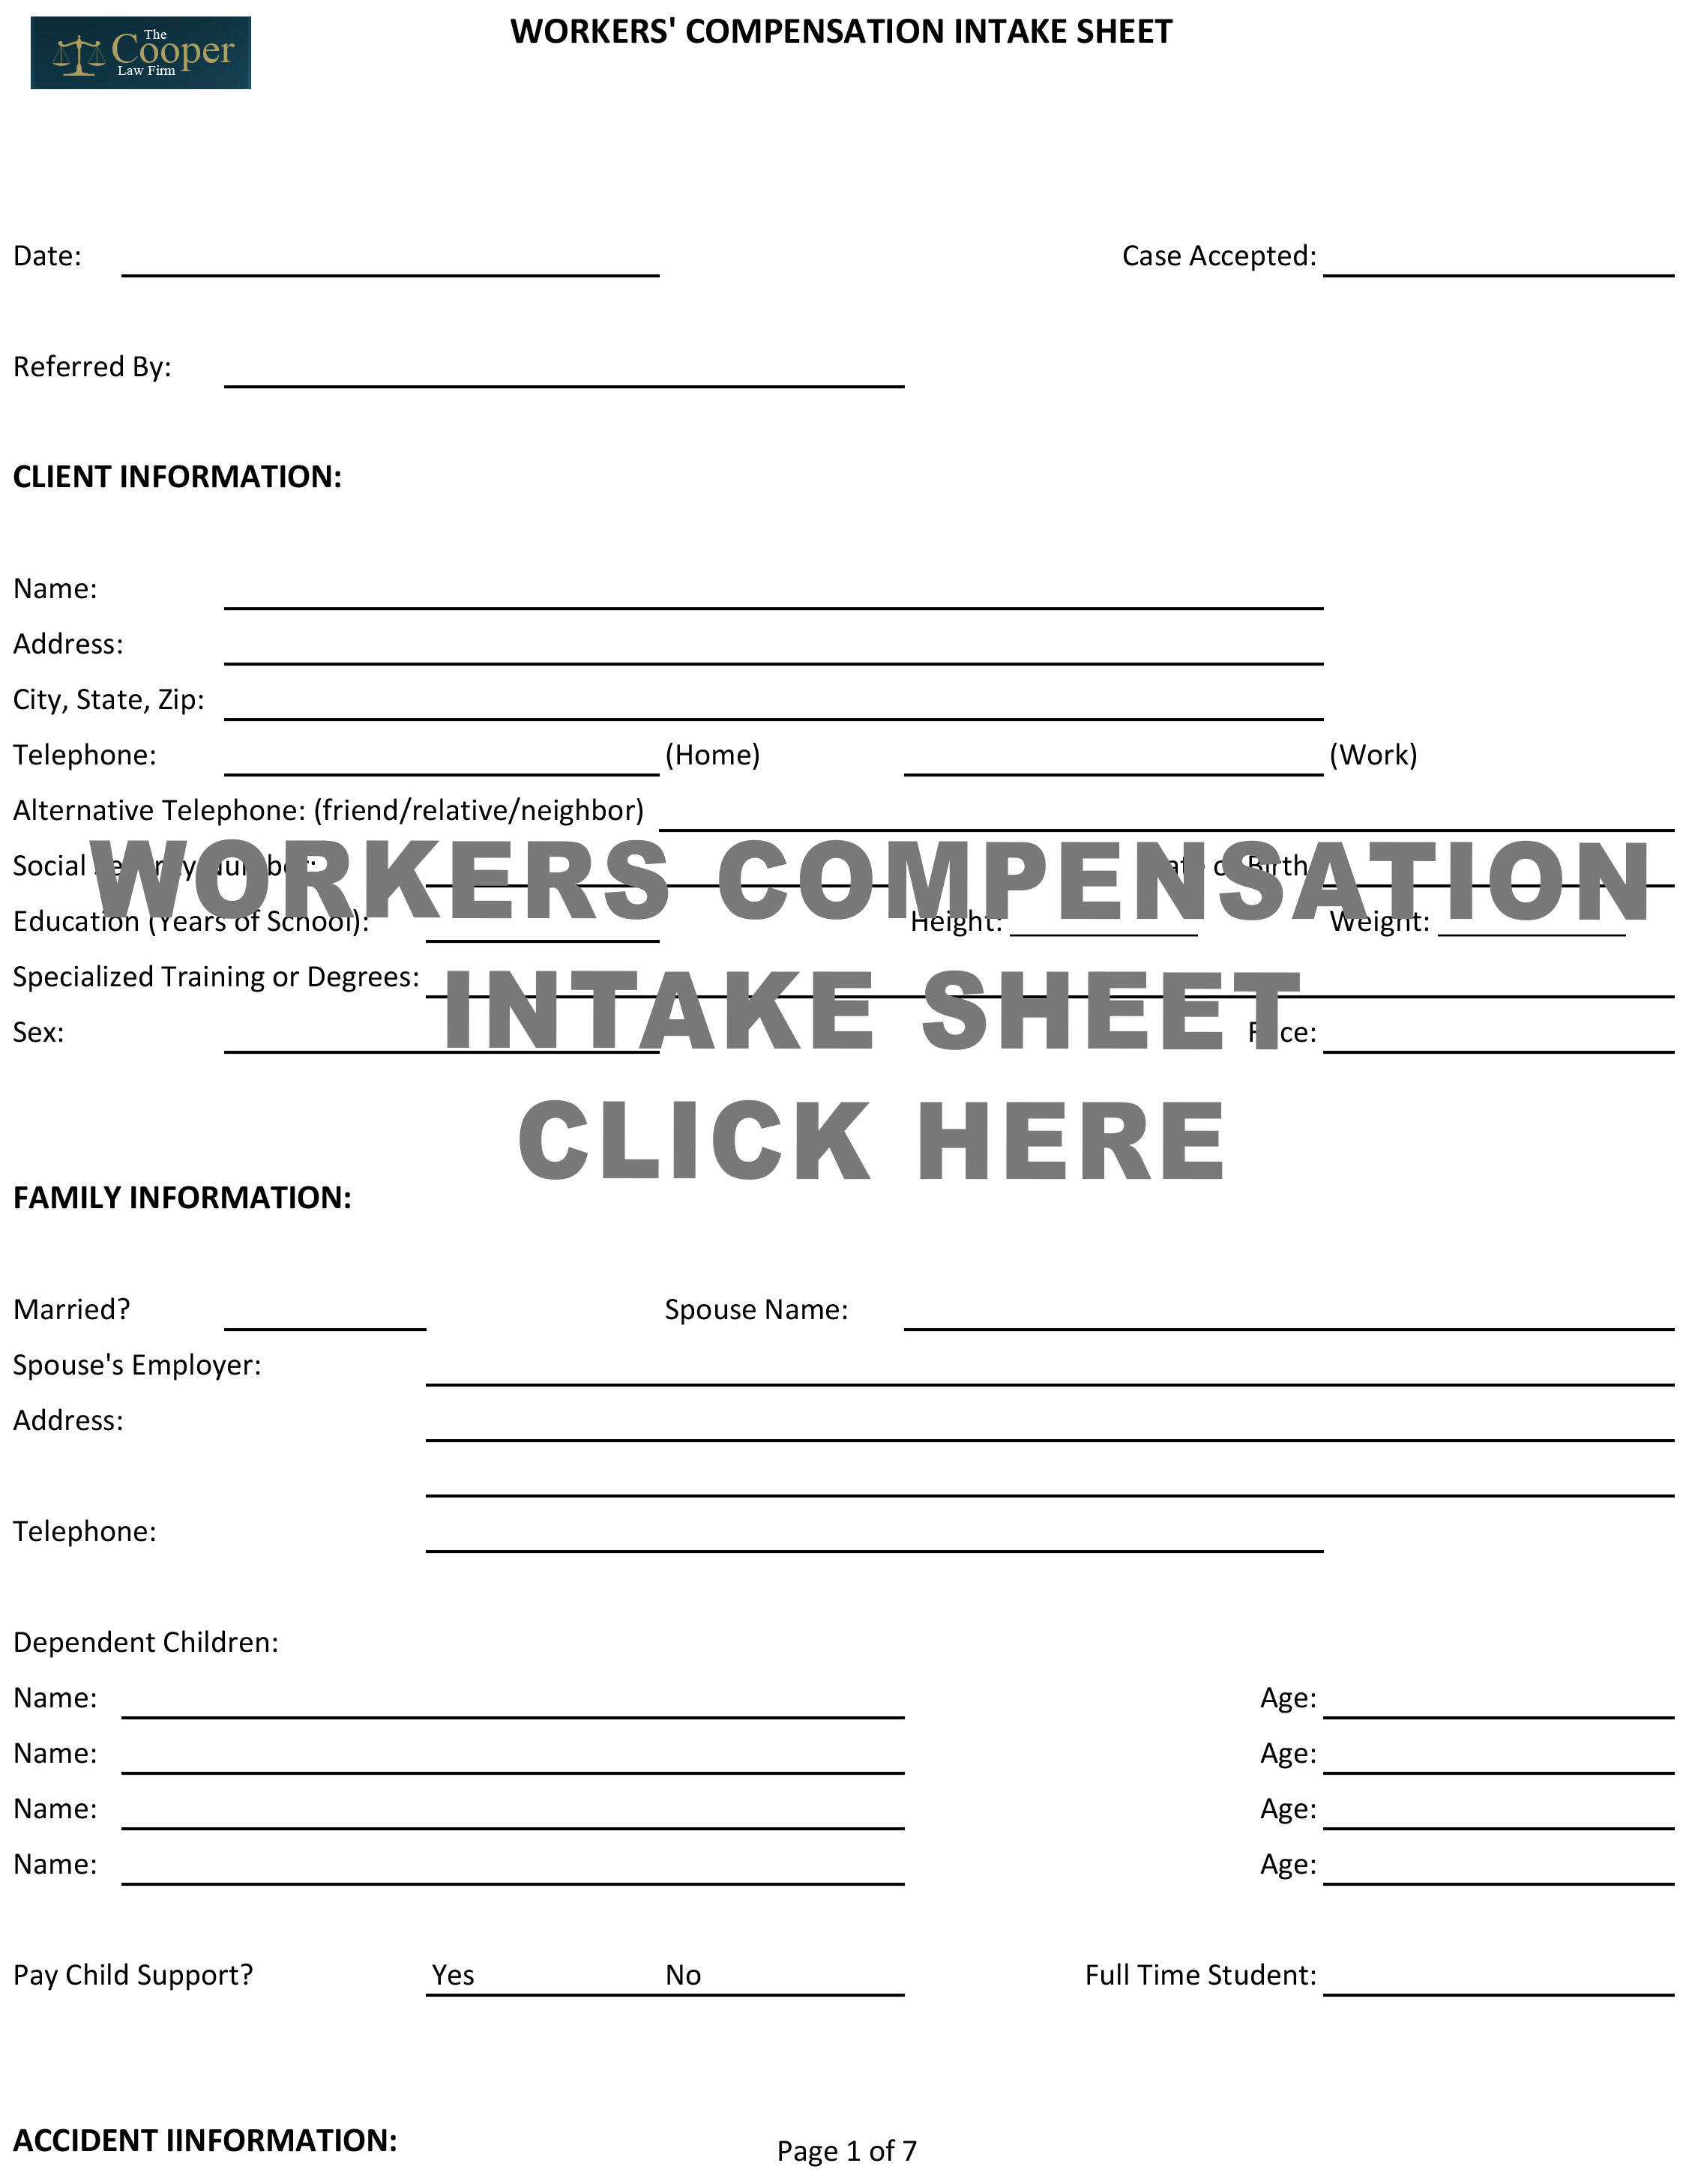 Workers Compensation Intake Sheet